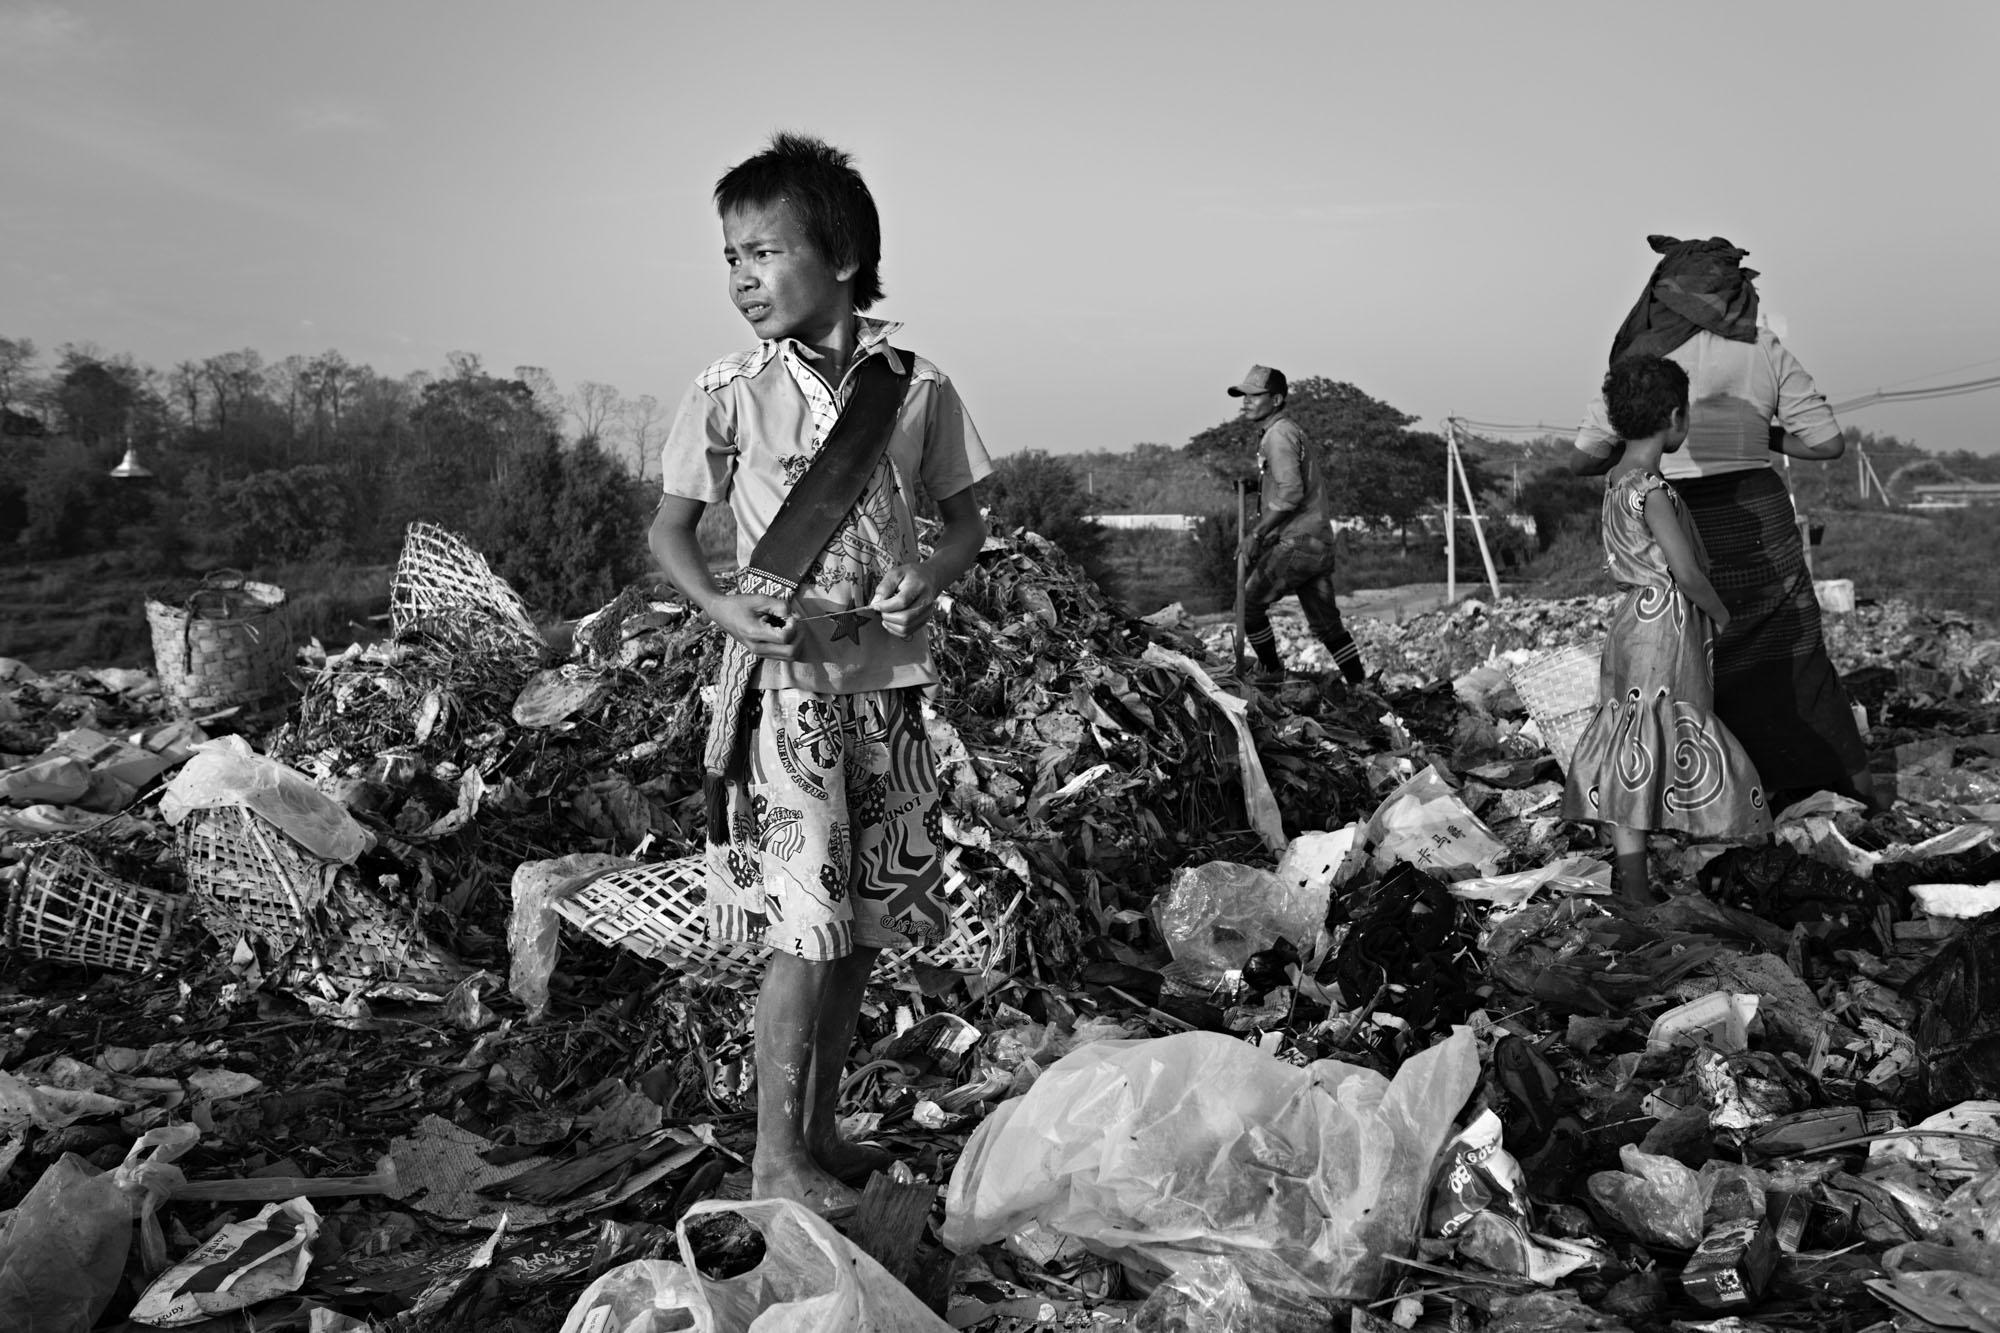 Naing Lin Oo searches through a trash dump for anything he can sell or keep for himself.